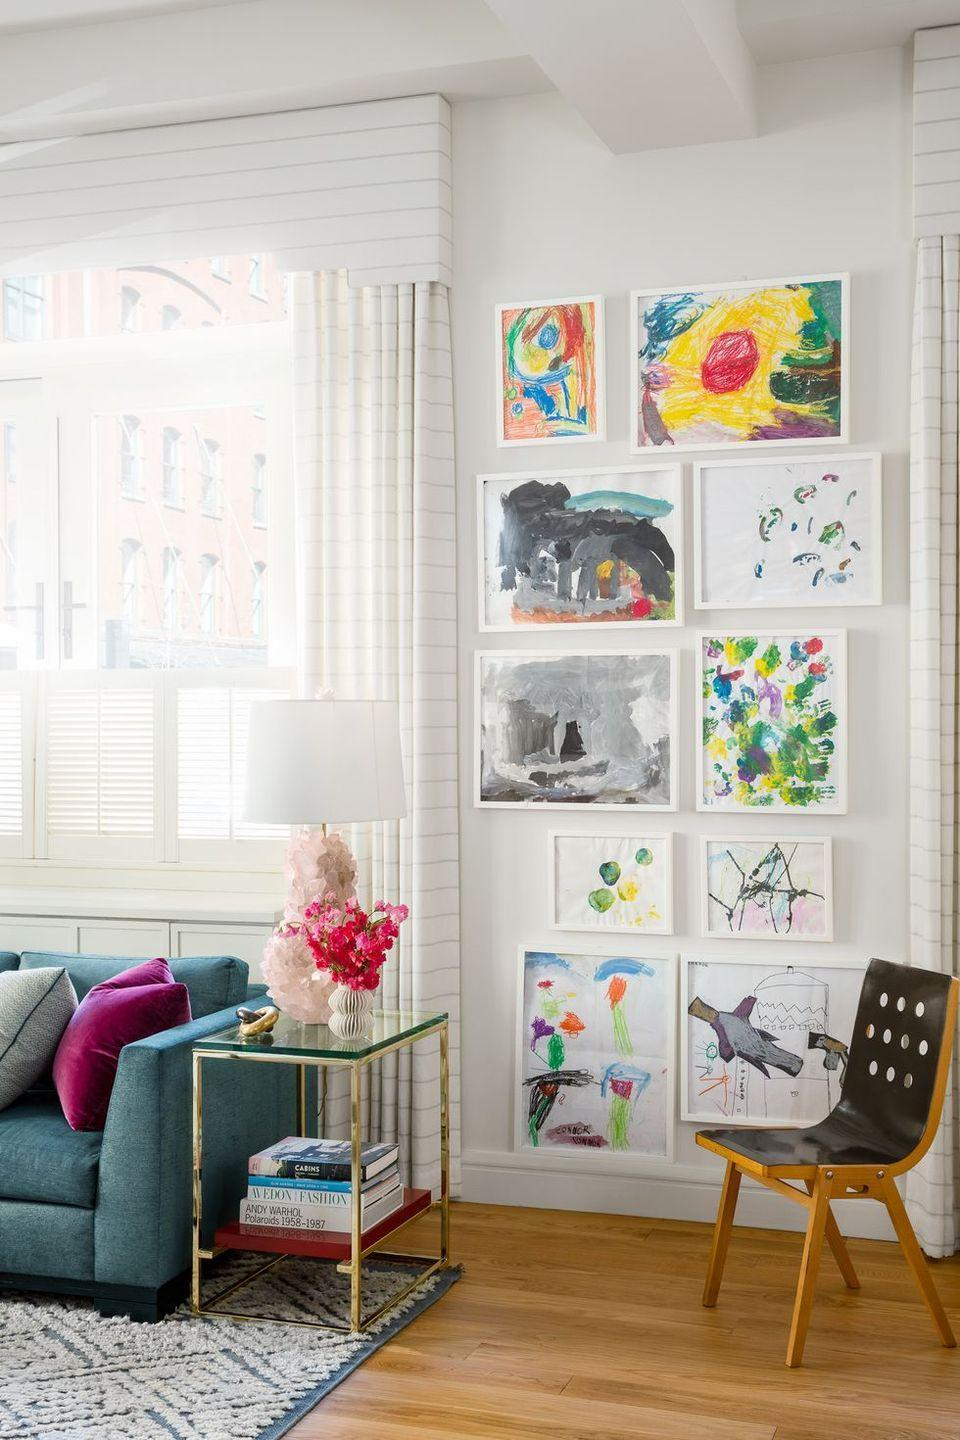 "<p>Frame your children's best masterpieces and display them with pride. They'll feel like a proud artist, and won't have to spend a fortune on art—it's a win-win. It can look refined when professionally done with clean, modern frames and then arranged in a classic floor-to-ceiling grid. Take note from this charming contemporary family room designed by <a href=""http://lillybunn.com/"" rel=""nofollow noopener"" target=""_blank"" data-ylk=""slk:Lilly Bunn"" class=""link rapid-noclick-resp"">Lilly Bunn</a>, where colorful art animates the entire space.</p>"